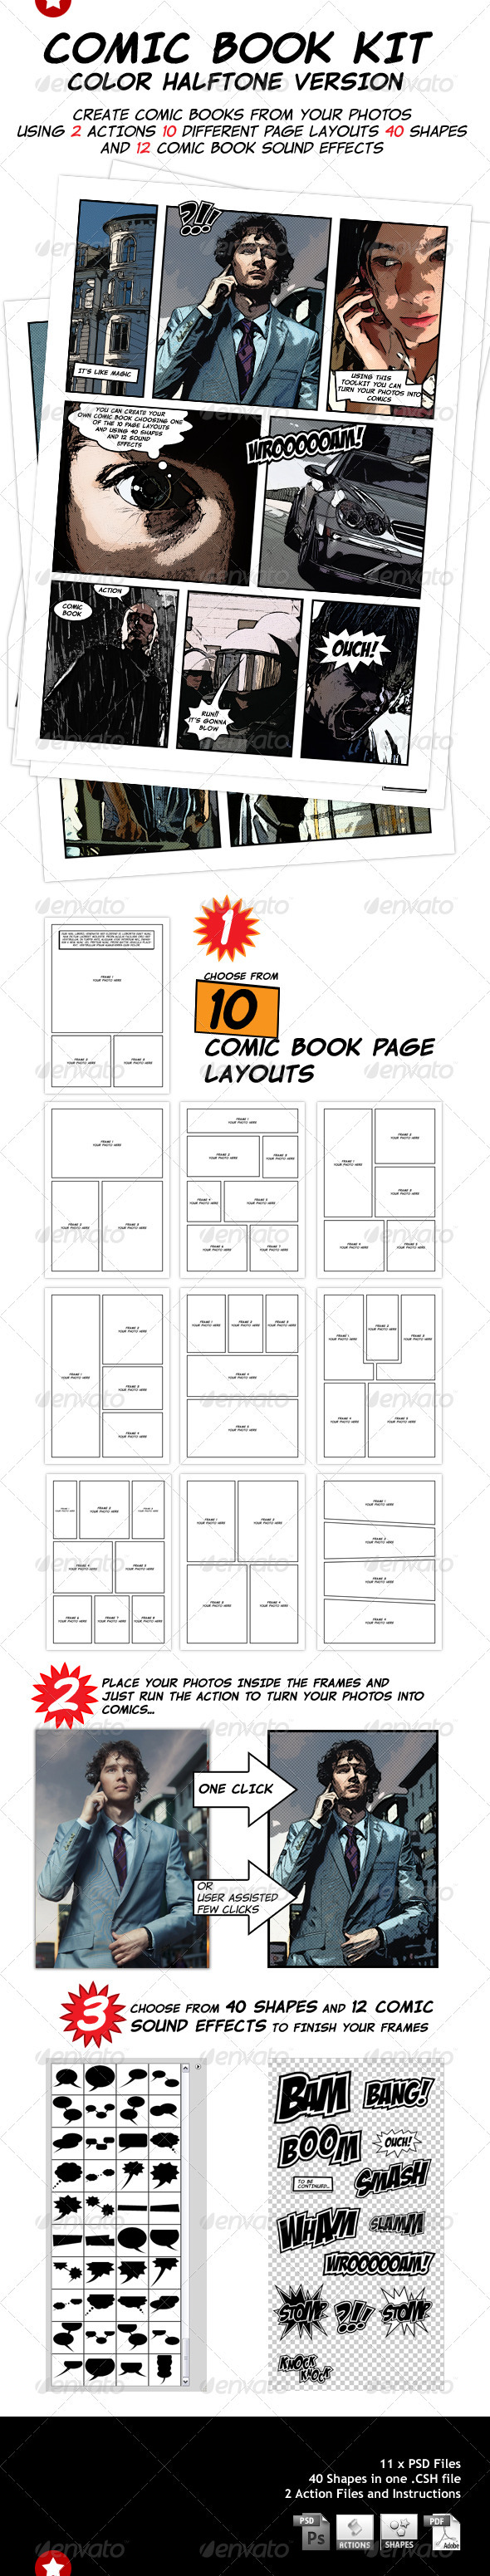 Comic Book Creation Kit - Artistic Photo Templates